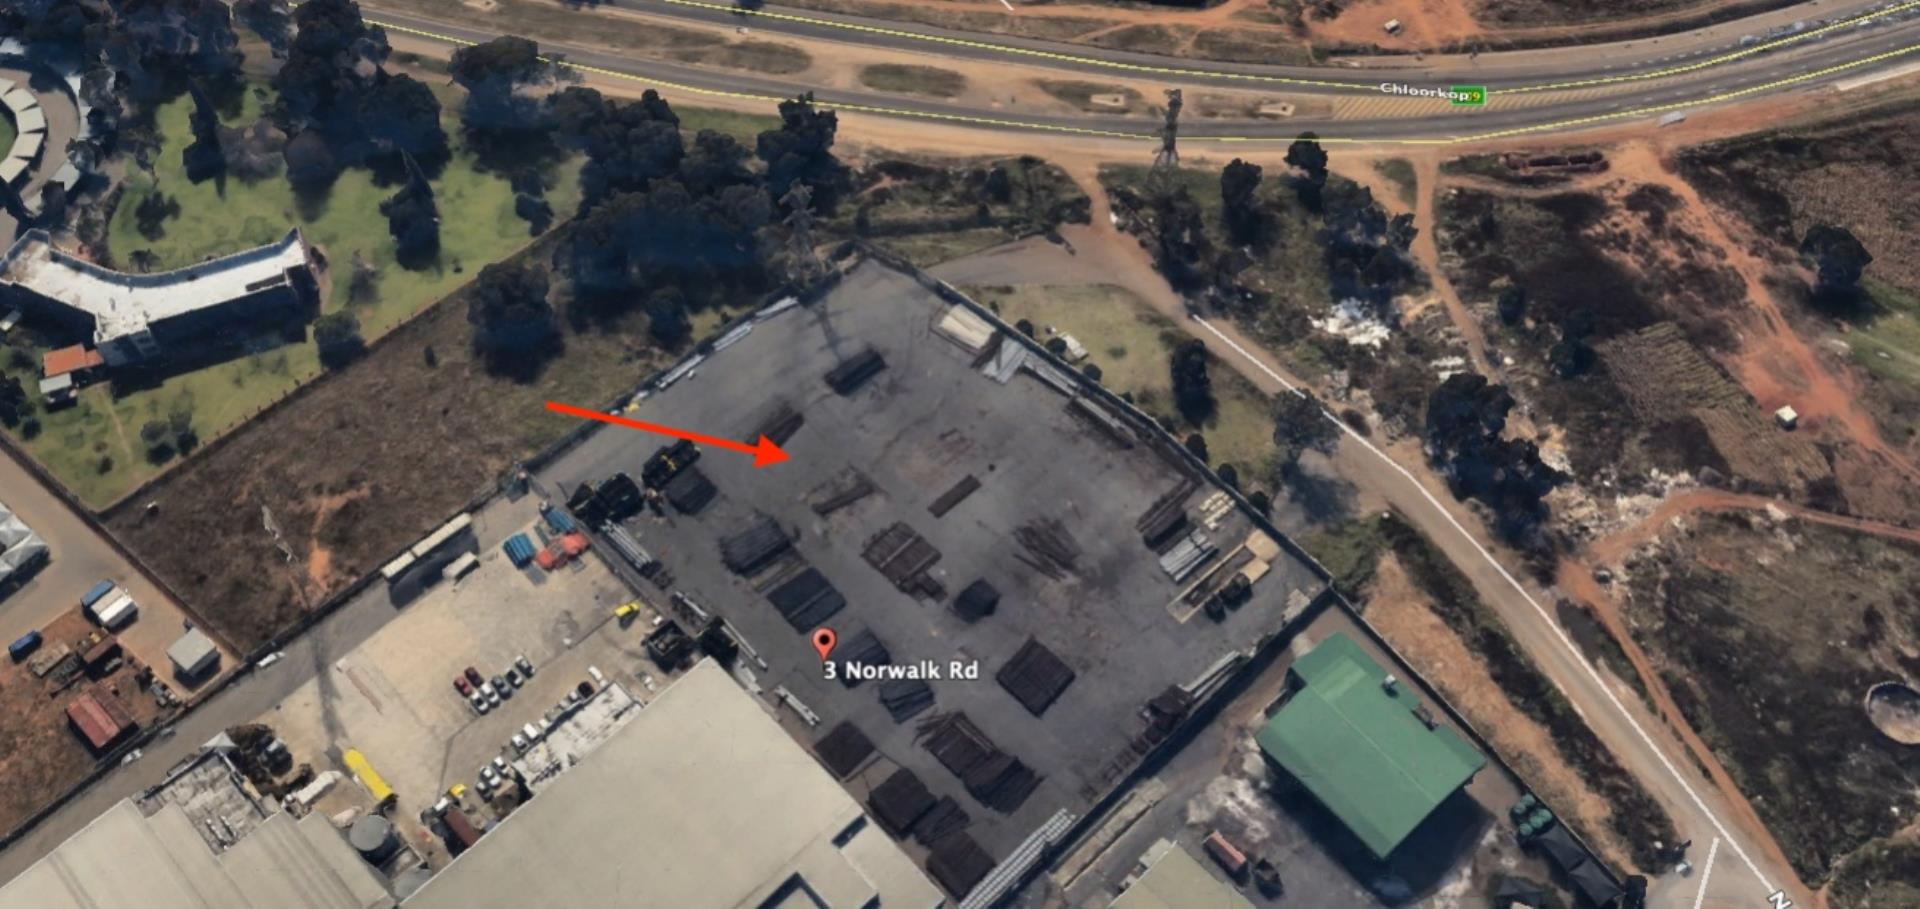 Industrial Property for Sale in Chloorkop, Kempton Park - Gauteng